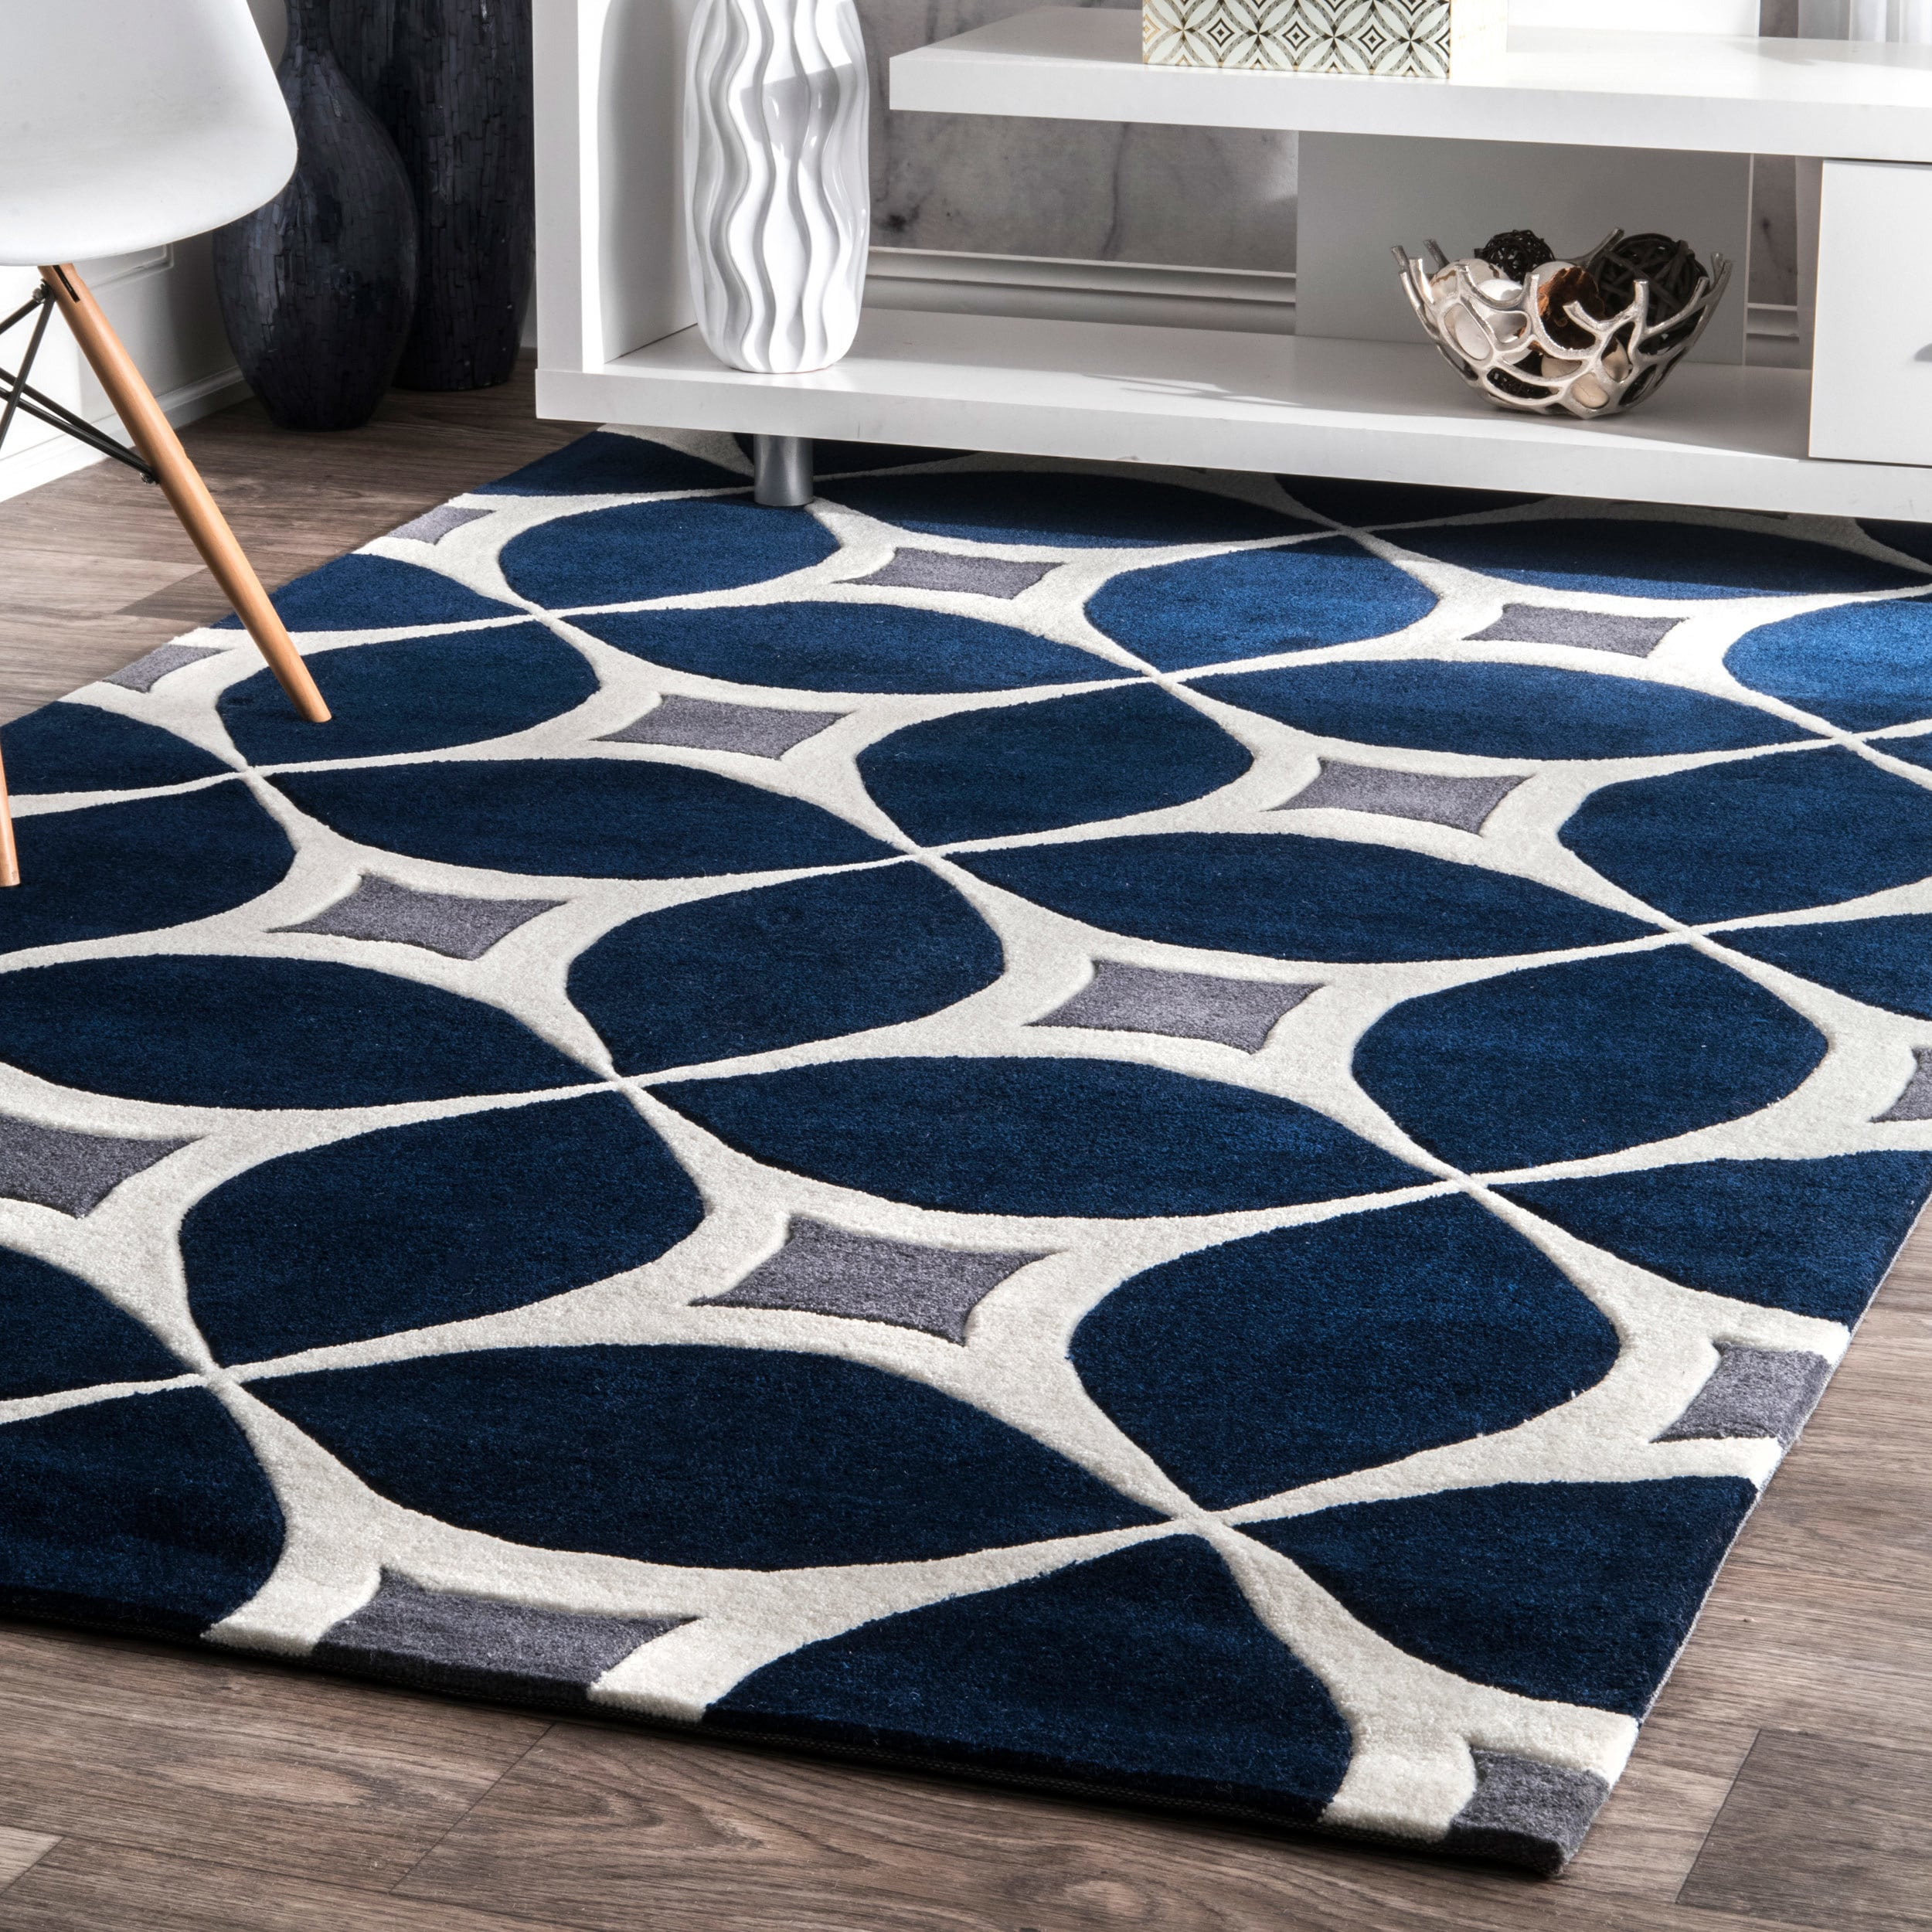 shop palm canyon kona handmade navy area rug 6 39 x 9 39 free shipping on orders over 45. Black Bedroom Furniture Sets. Home Design Ideas